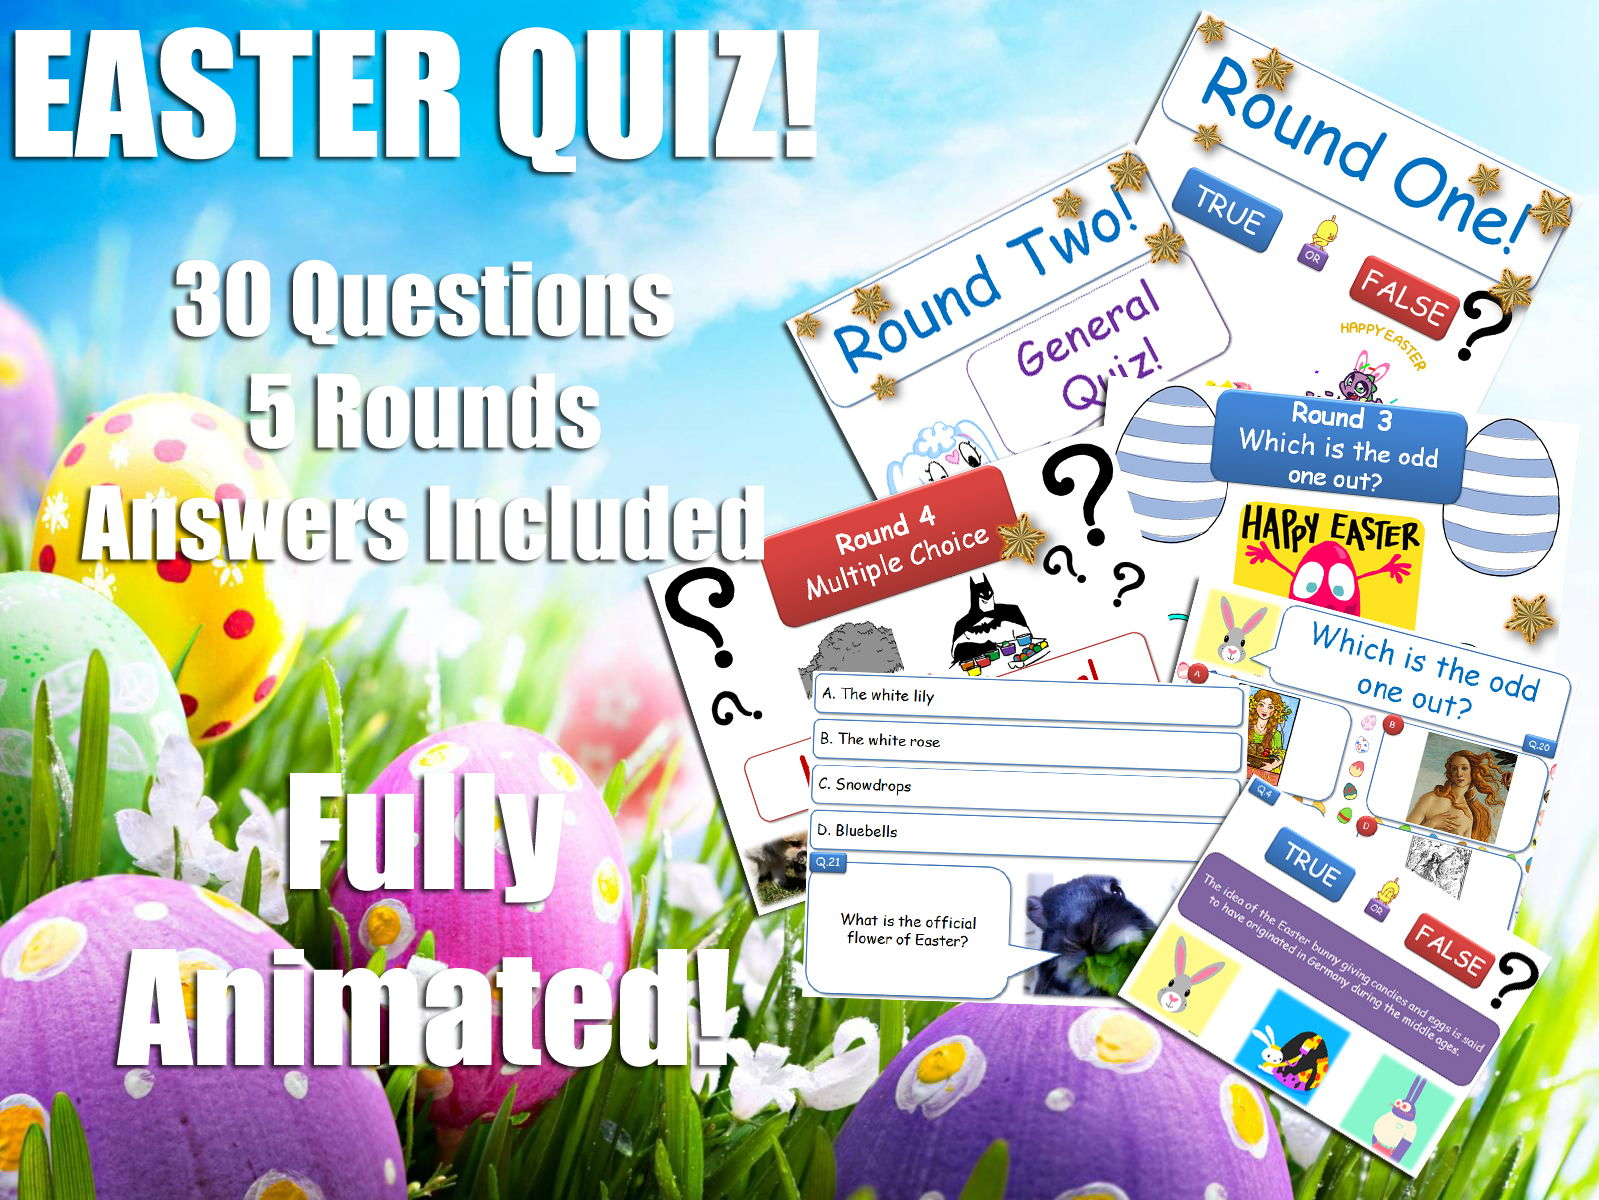 Form Tutor - Easter Quiz Bundle! [Form Time Activities!] P4C & Philosophy - Debates - Activities - Discussions - SMSC! Moral and Ethical Debate Edition!